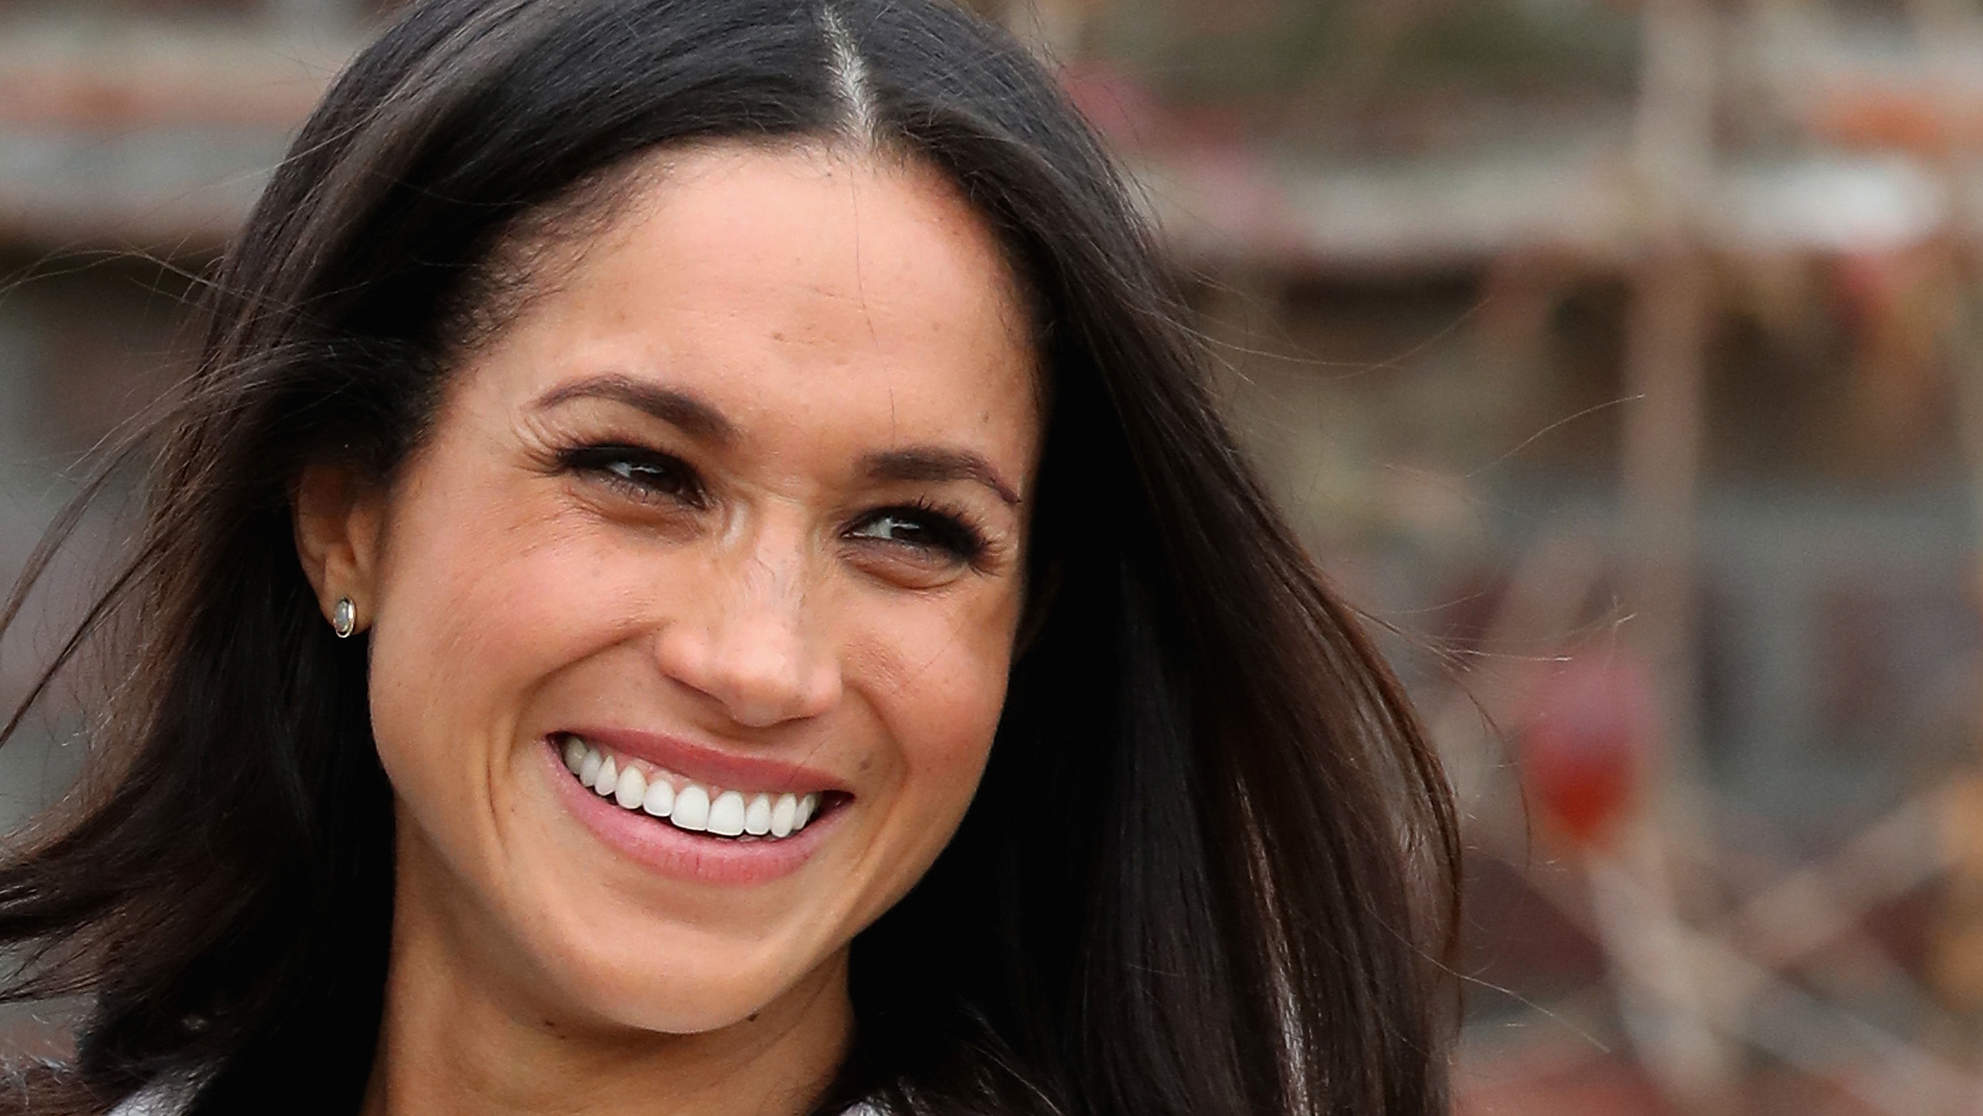 The Bag Meghan Markle Was Just Spotted Carrying Is on Sale